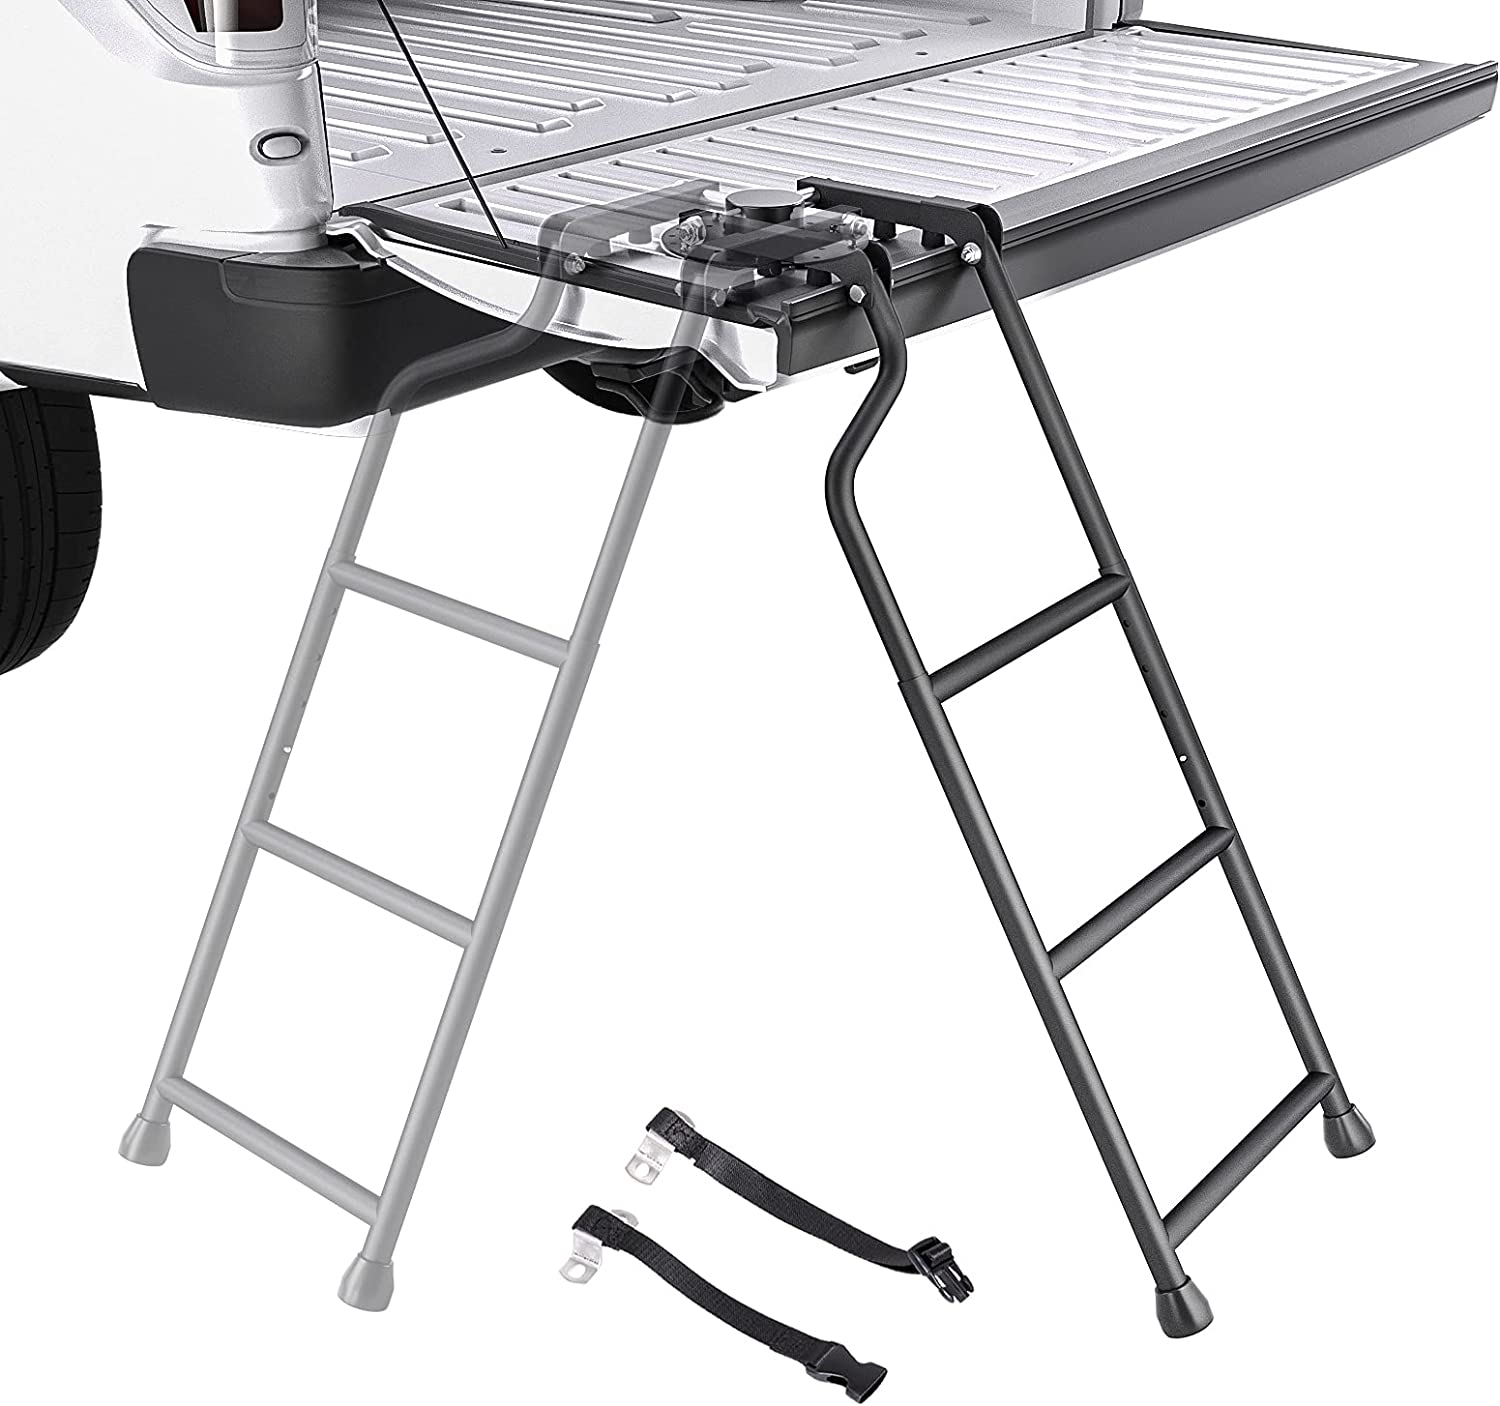 AA Product Tailgate Rapid rise Max 79% OFF Ladder Pickup Truck Foldable